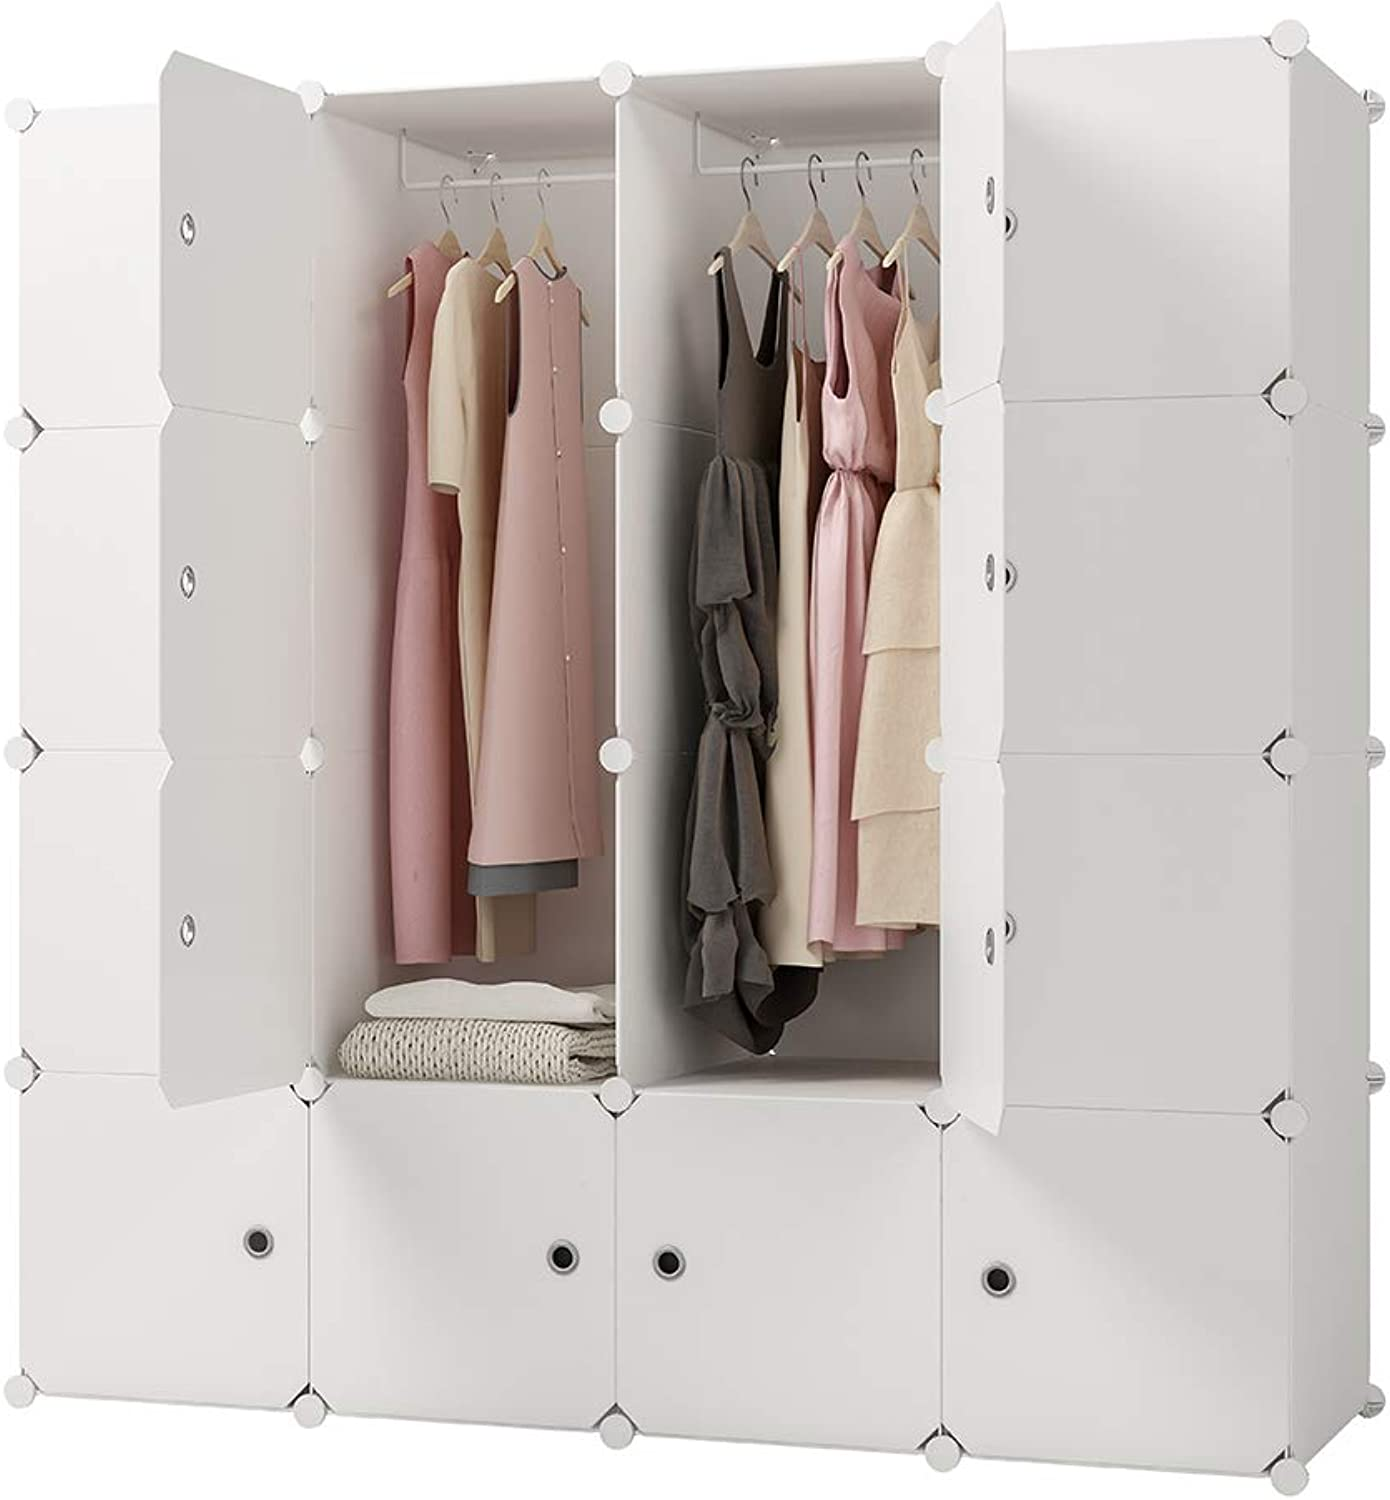 KOUSI Portable Clothes Closet Clothing Storage Plastic Dresser Shelves Armoire Wardrobe Moving Boxes Rack Bins Shelf Closet for Bedroom Organizers and Storage, White, 10 Cubes+2 Hanging Sections